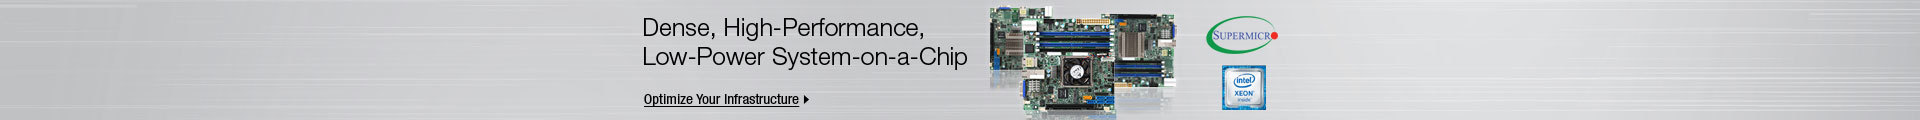 Dense, High-Performance, Low-Power System-on-a-Chip